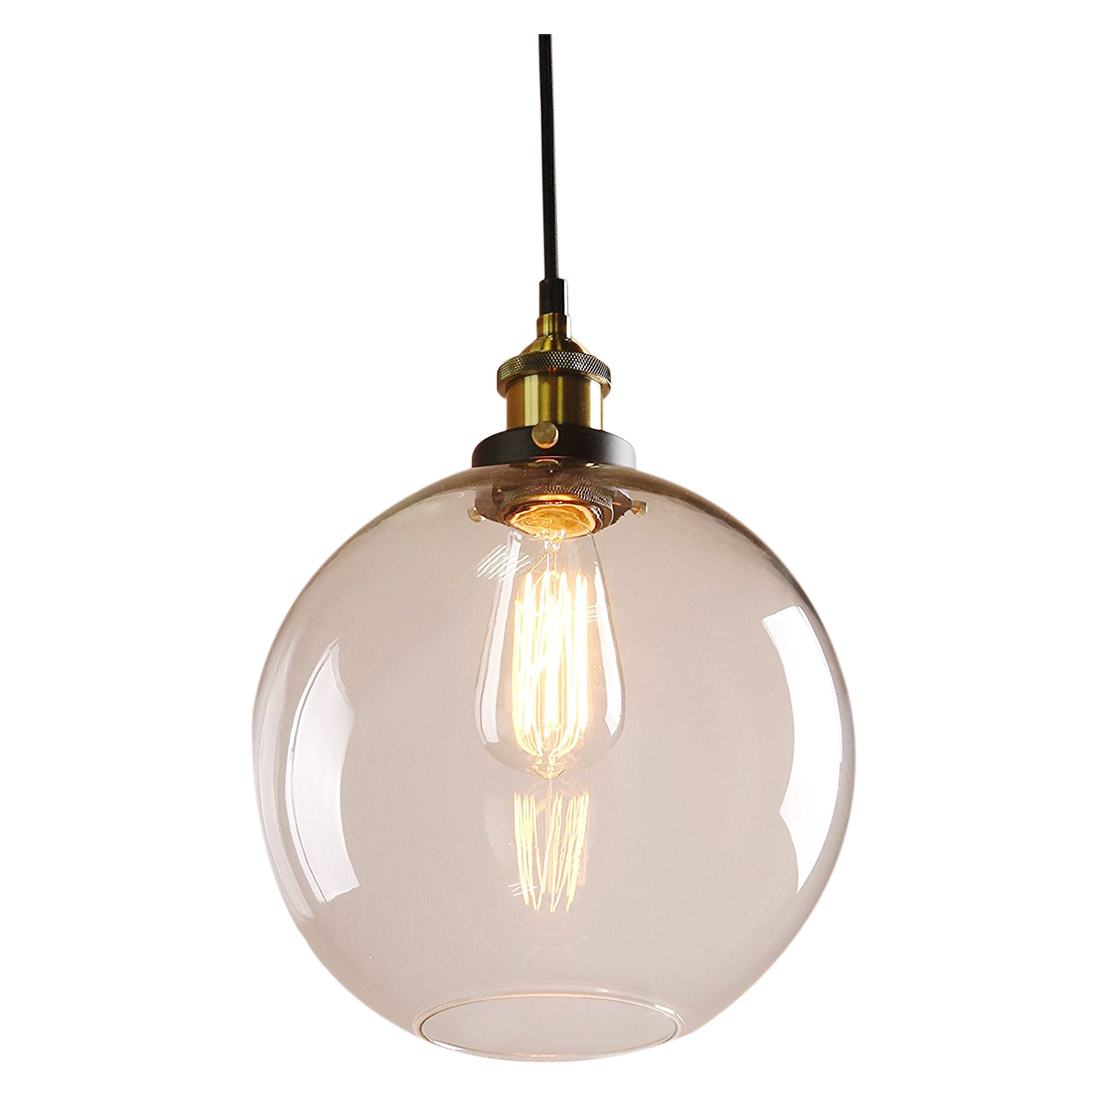 DSHA Hot Sale Modern Industrial Metal Glass Loft Pendant Lamp Retro Vintage Lamp(Antique head diameter 25cm)